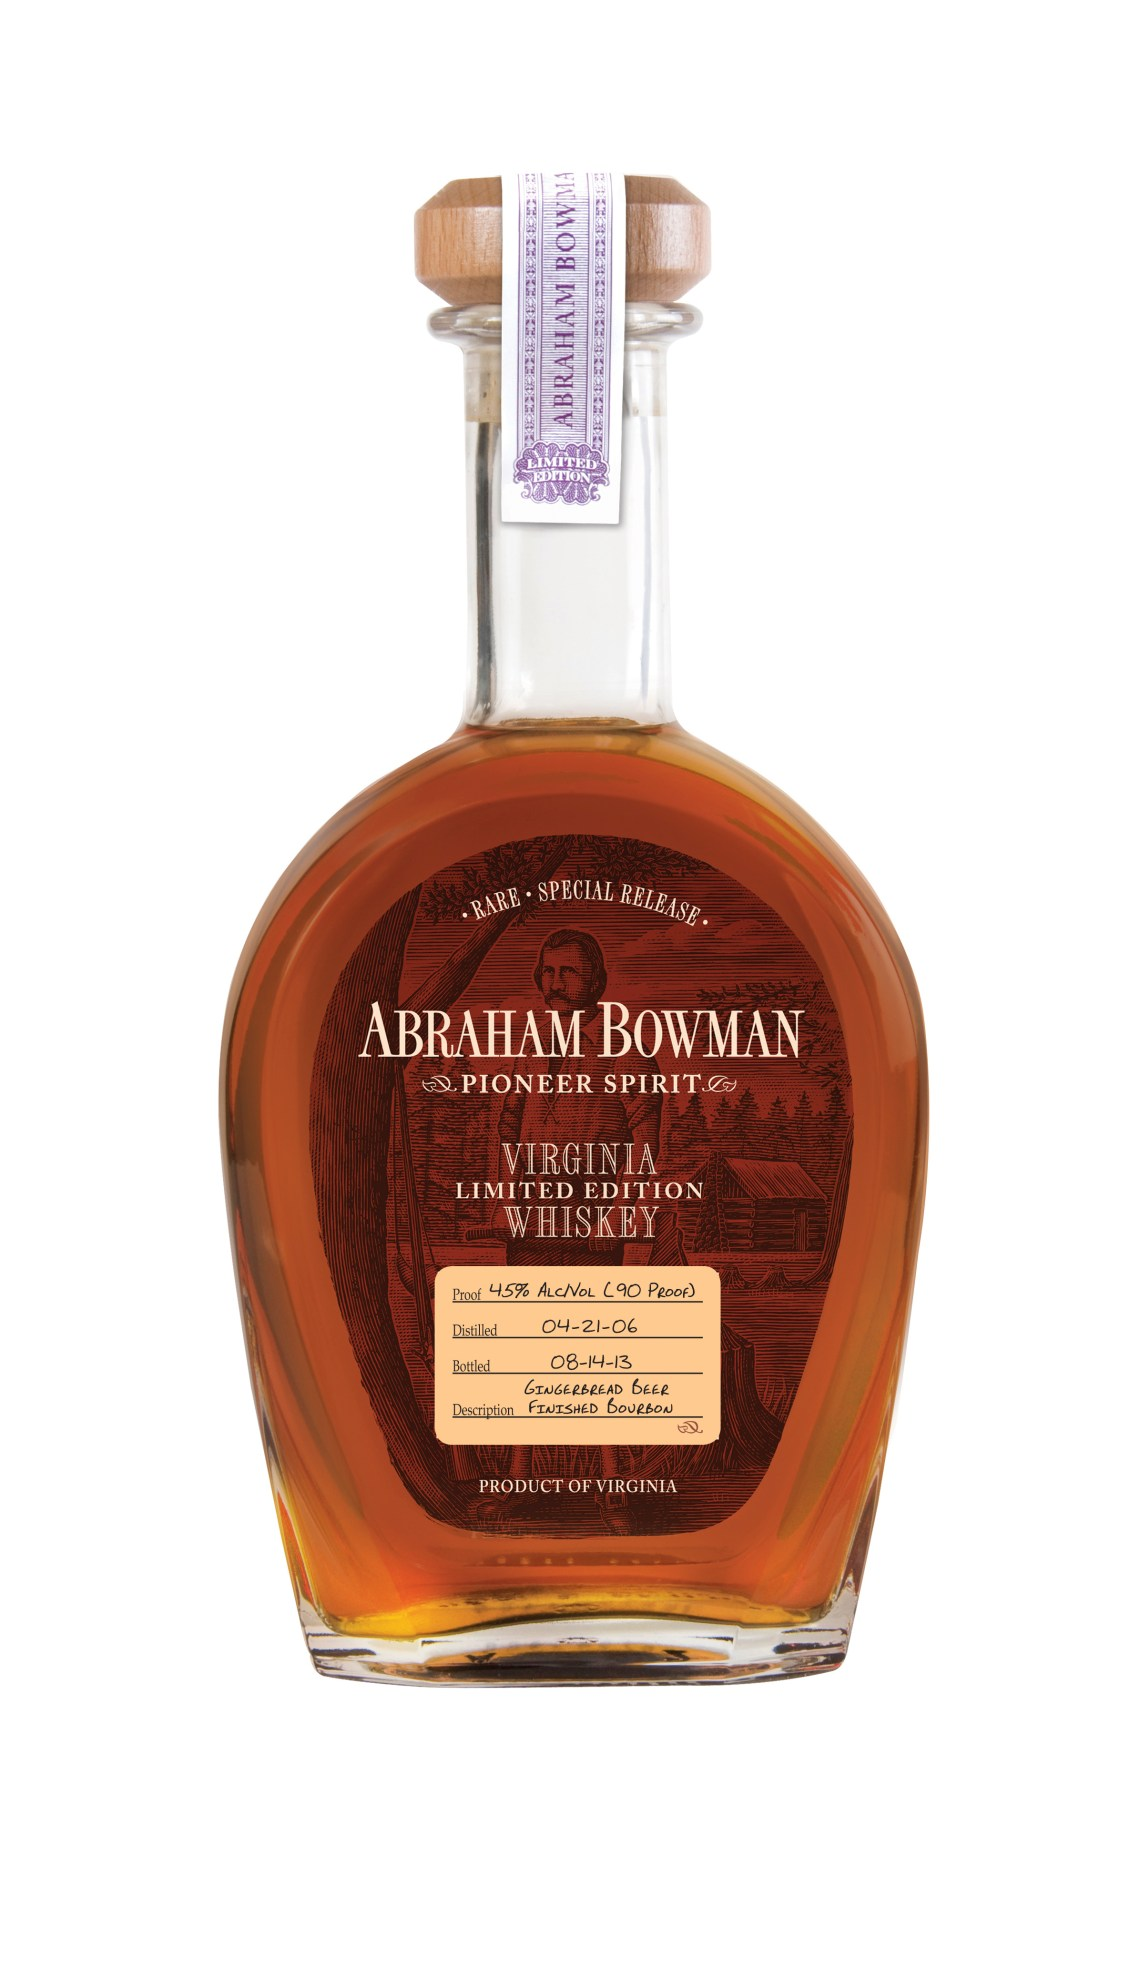 Abraham Bowman Gingerbread Beer Finished Bourbon